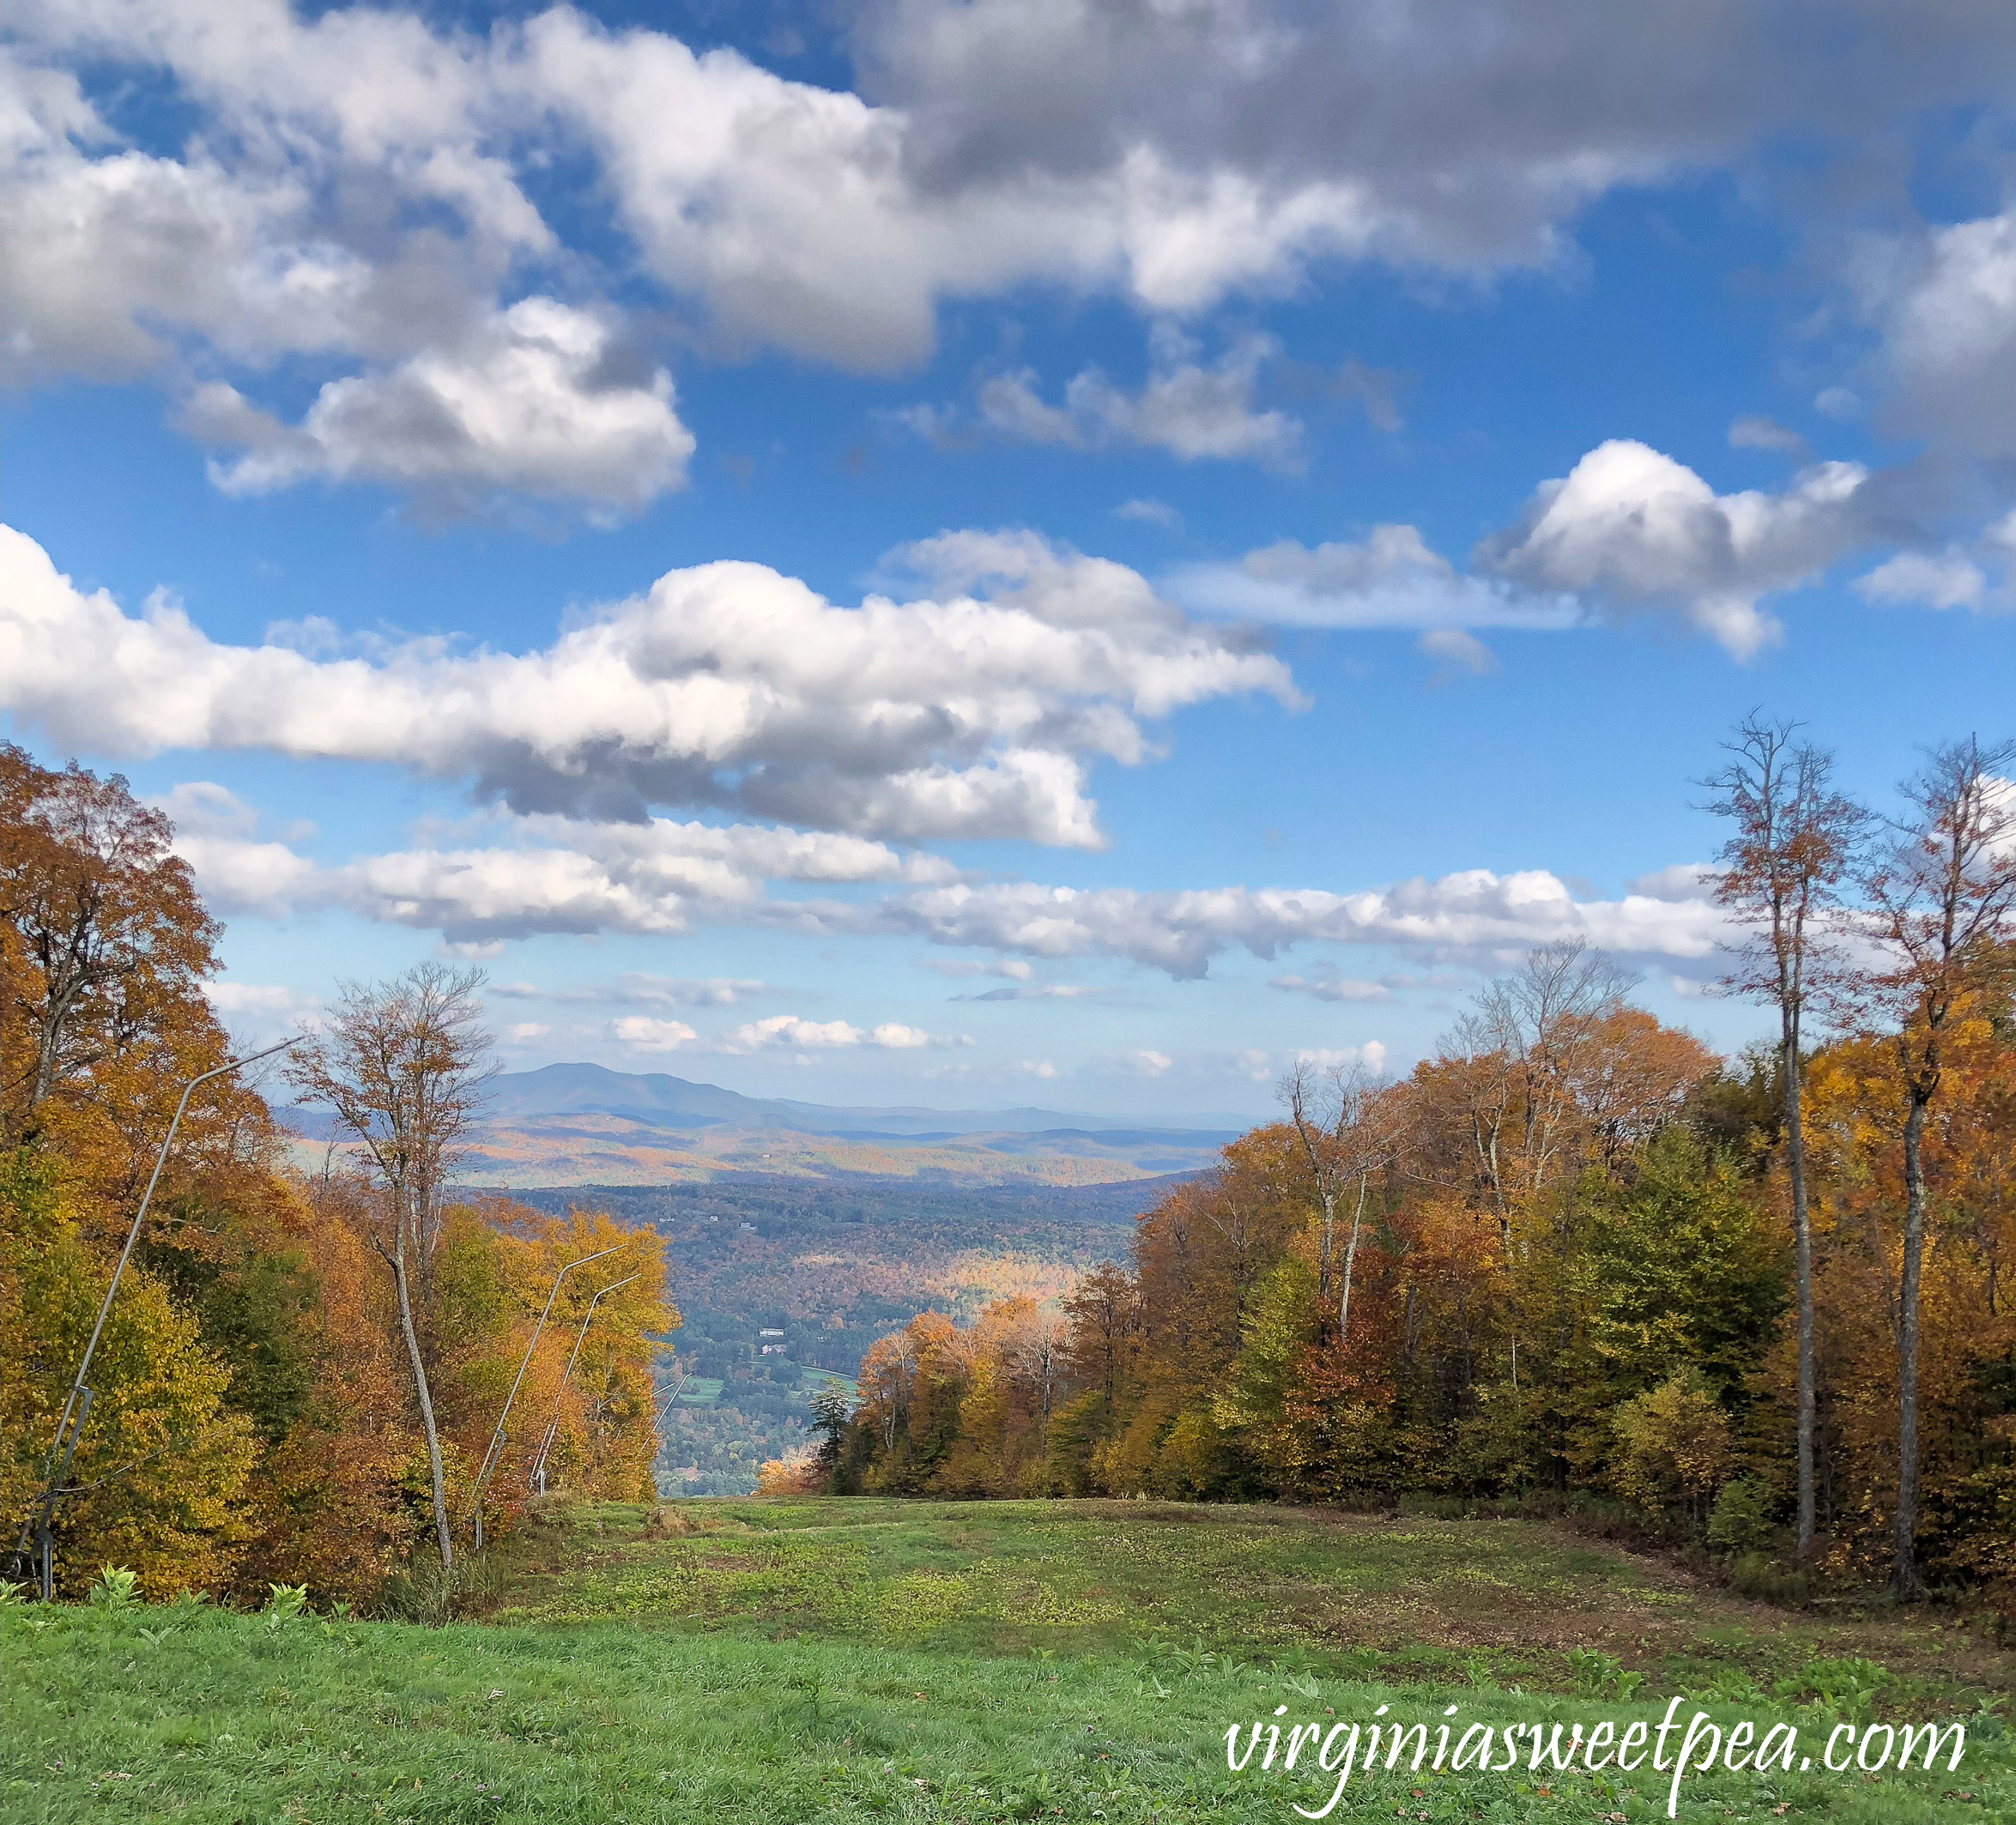 Leaf peeping in Vermont - View from the top of Okemo Mountain #vermont #fallinvermont #okemo #ludlow